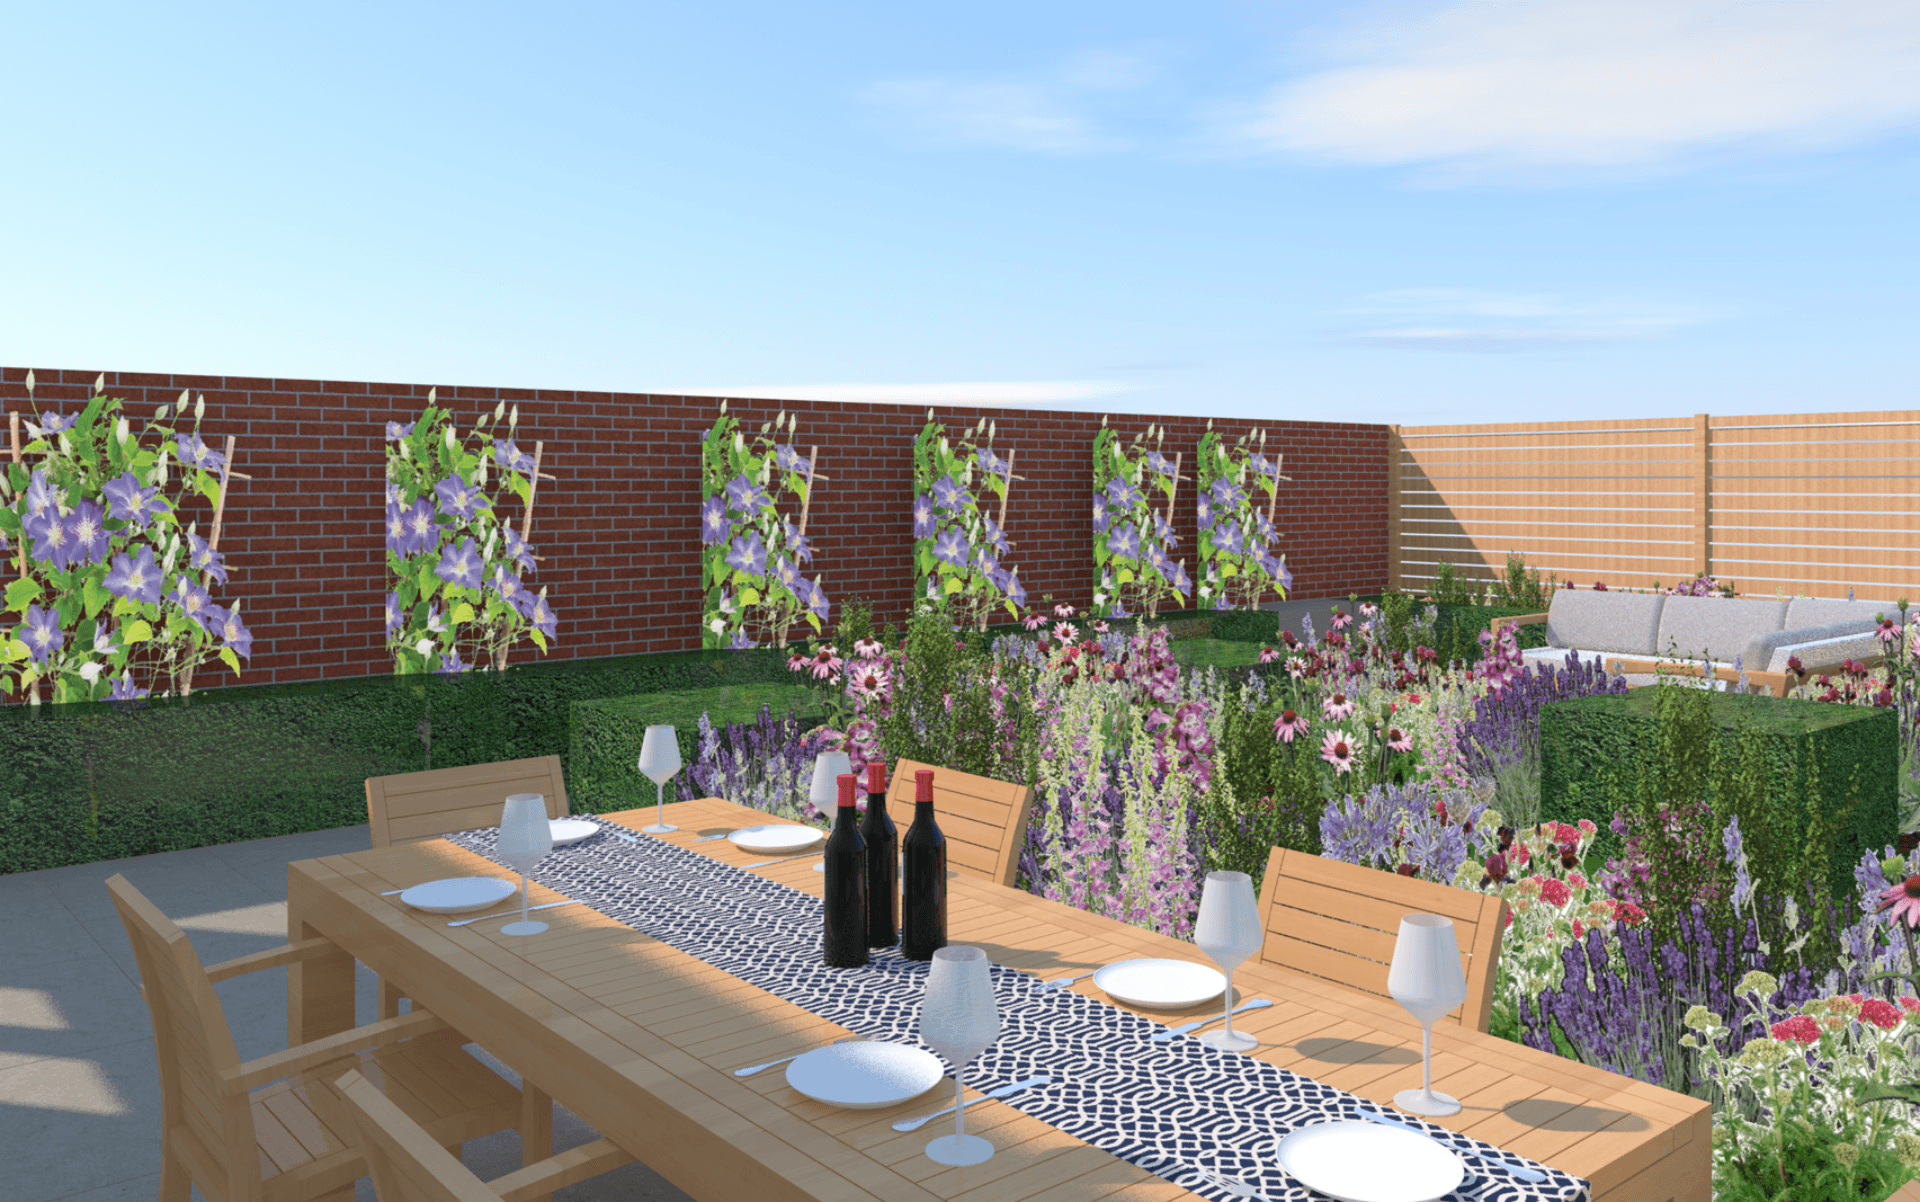 Garden Design Visual Dining and Lounge Area